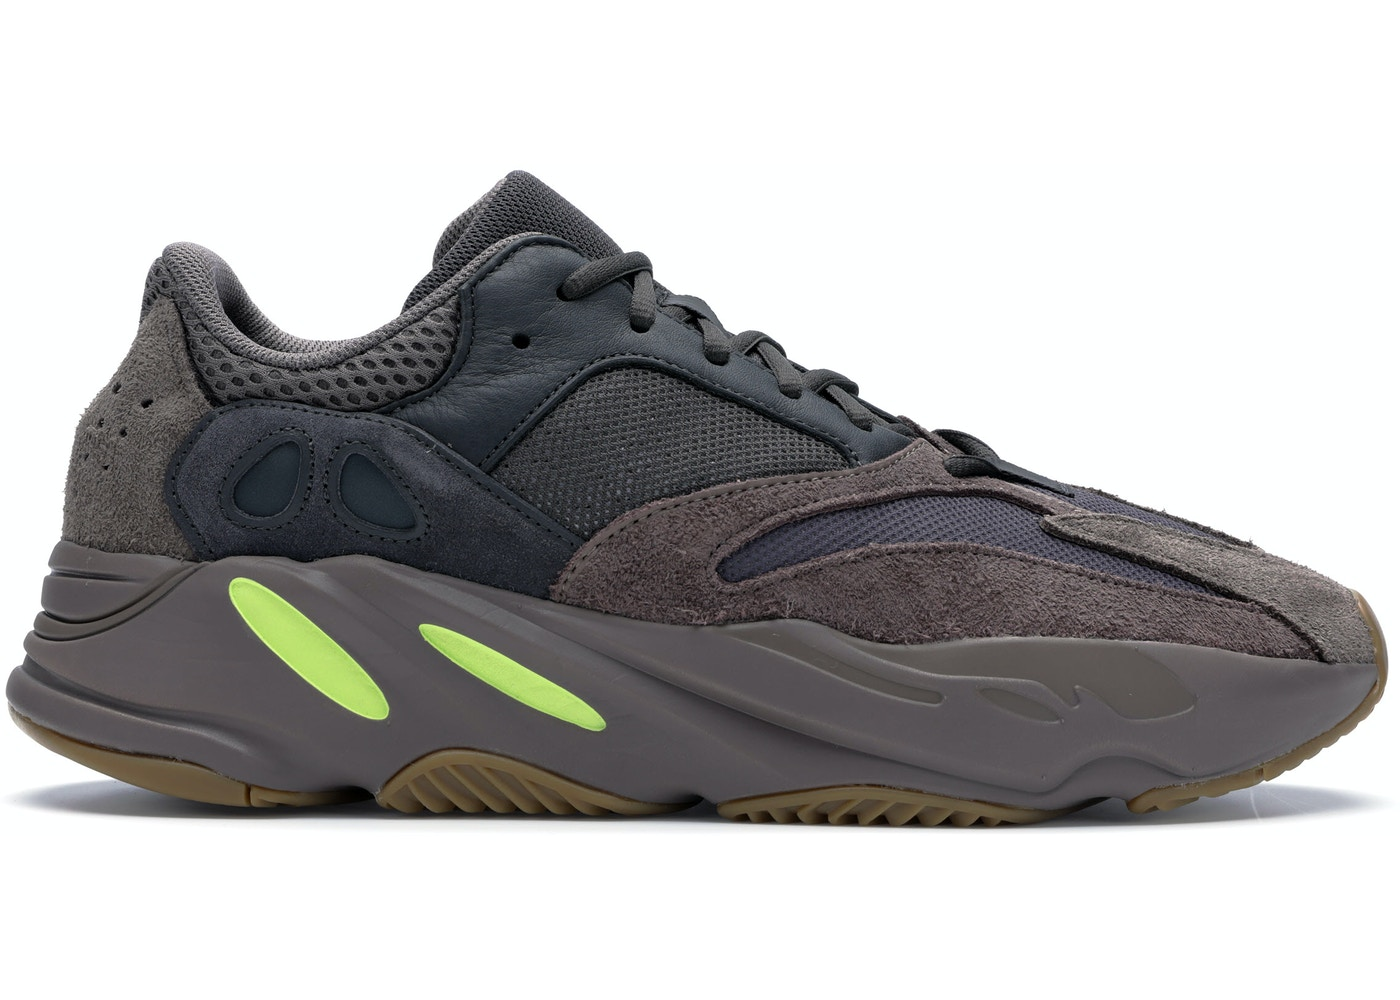 finest selection 23e84 01170 adidas Yeezy 700 Mauve